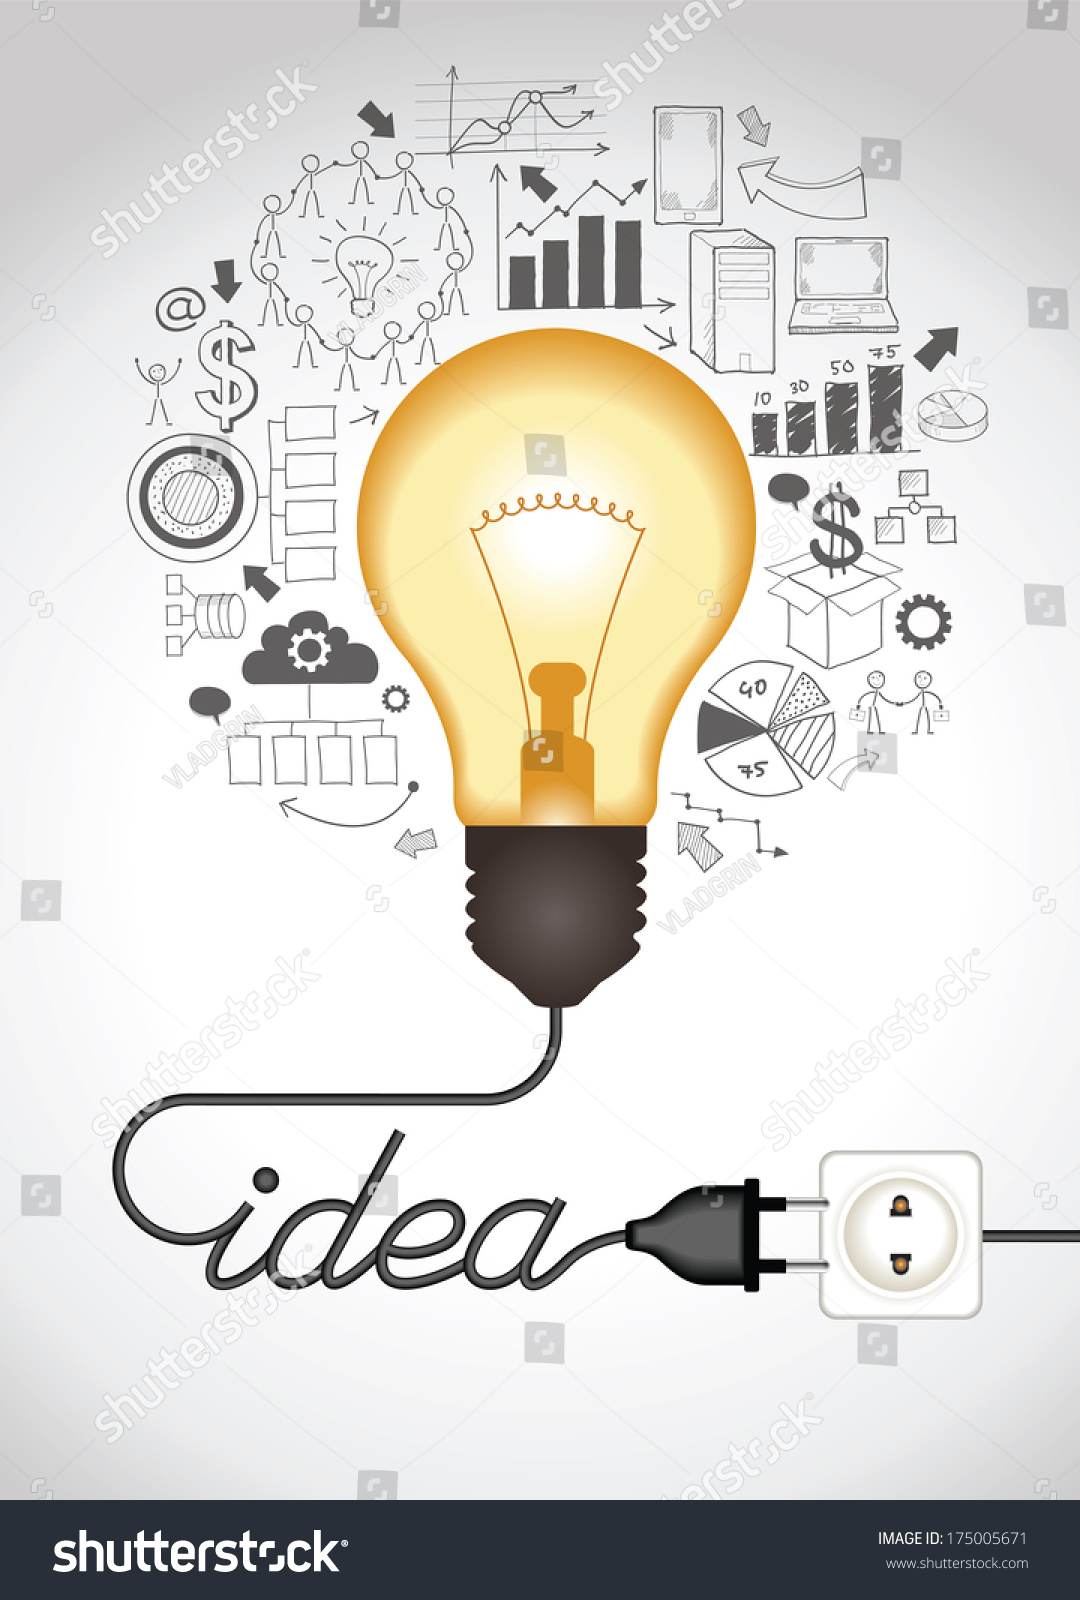 concept of productive business ideas lightbulb with drawing graphics around lamp is plugged - Graphic Design Business Ideas